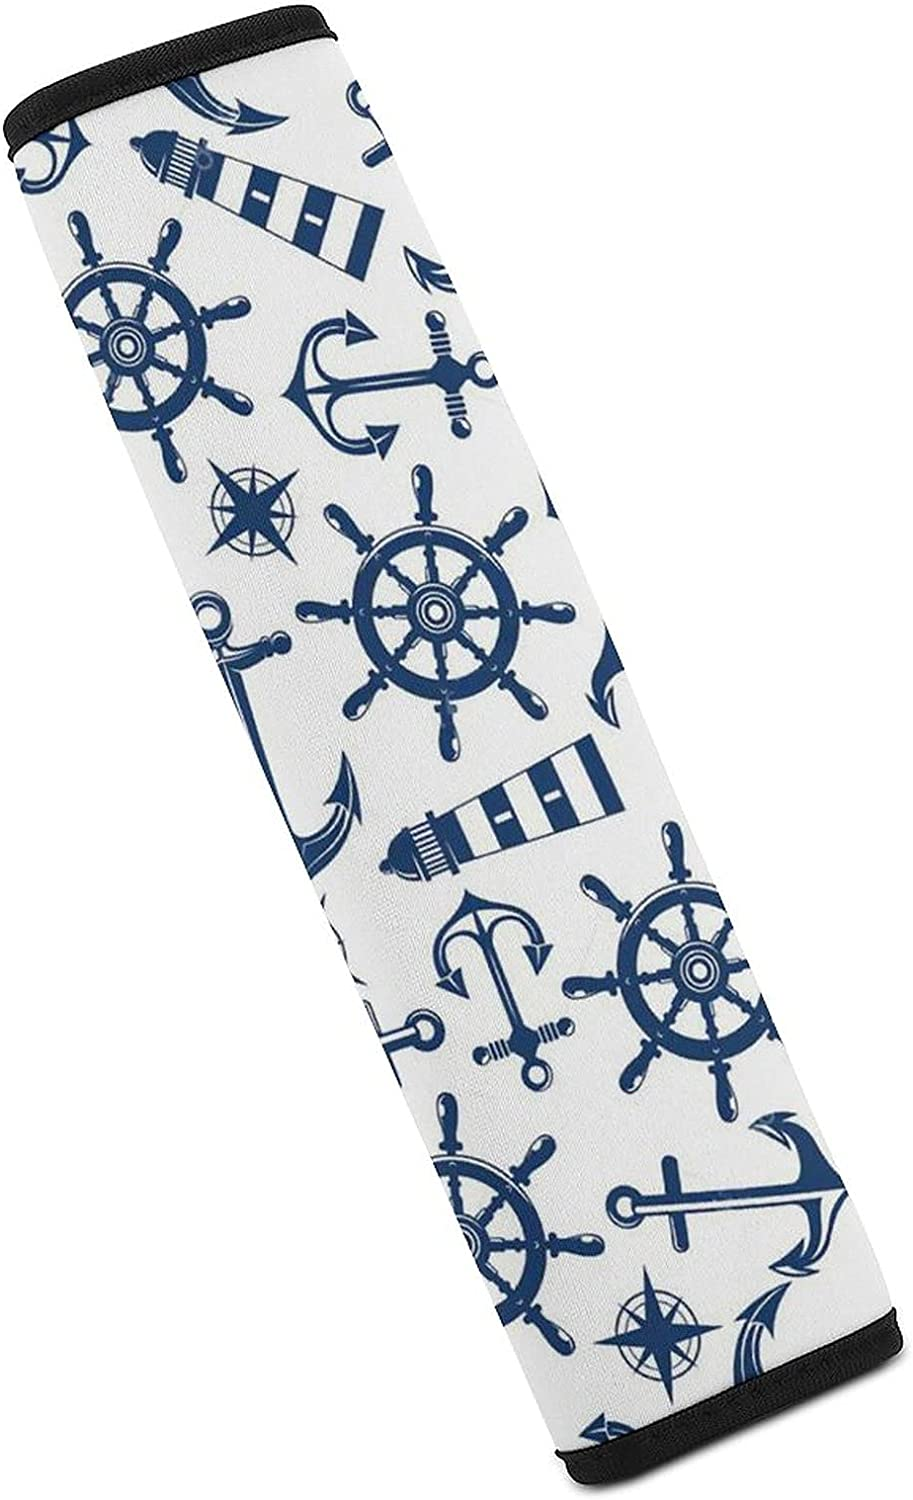 Opening large release sale ZIXKPEZMG Nautical Funny Anchor Car Seat Belt Mail order Shoulder Pad Cover